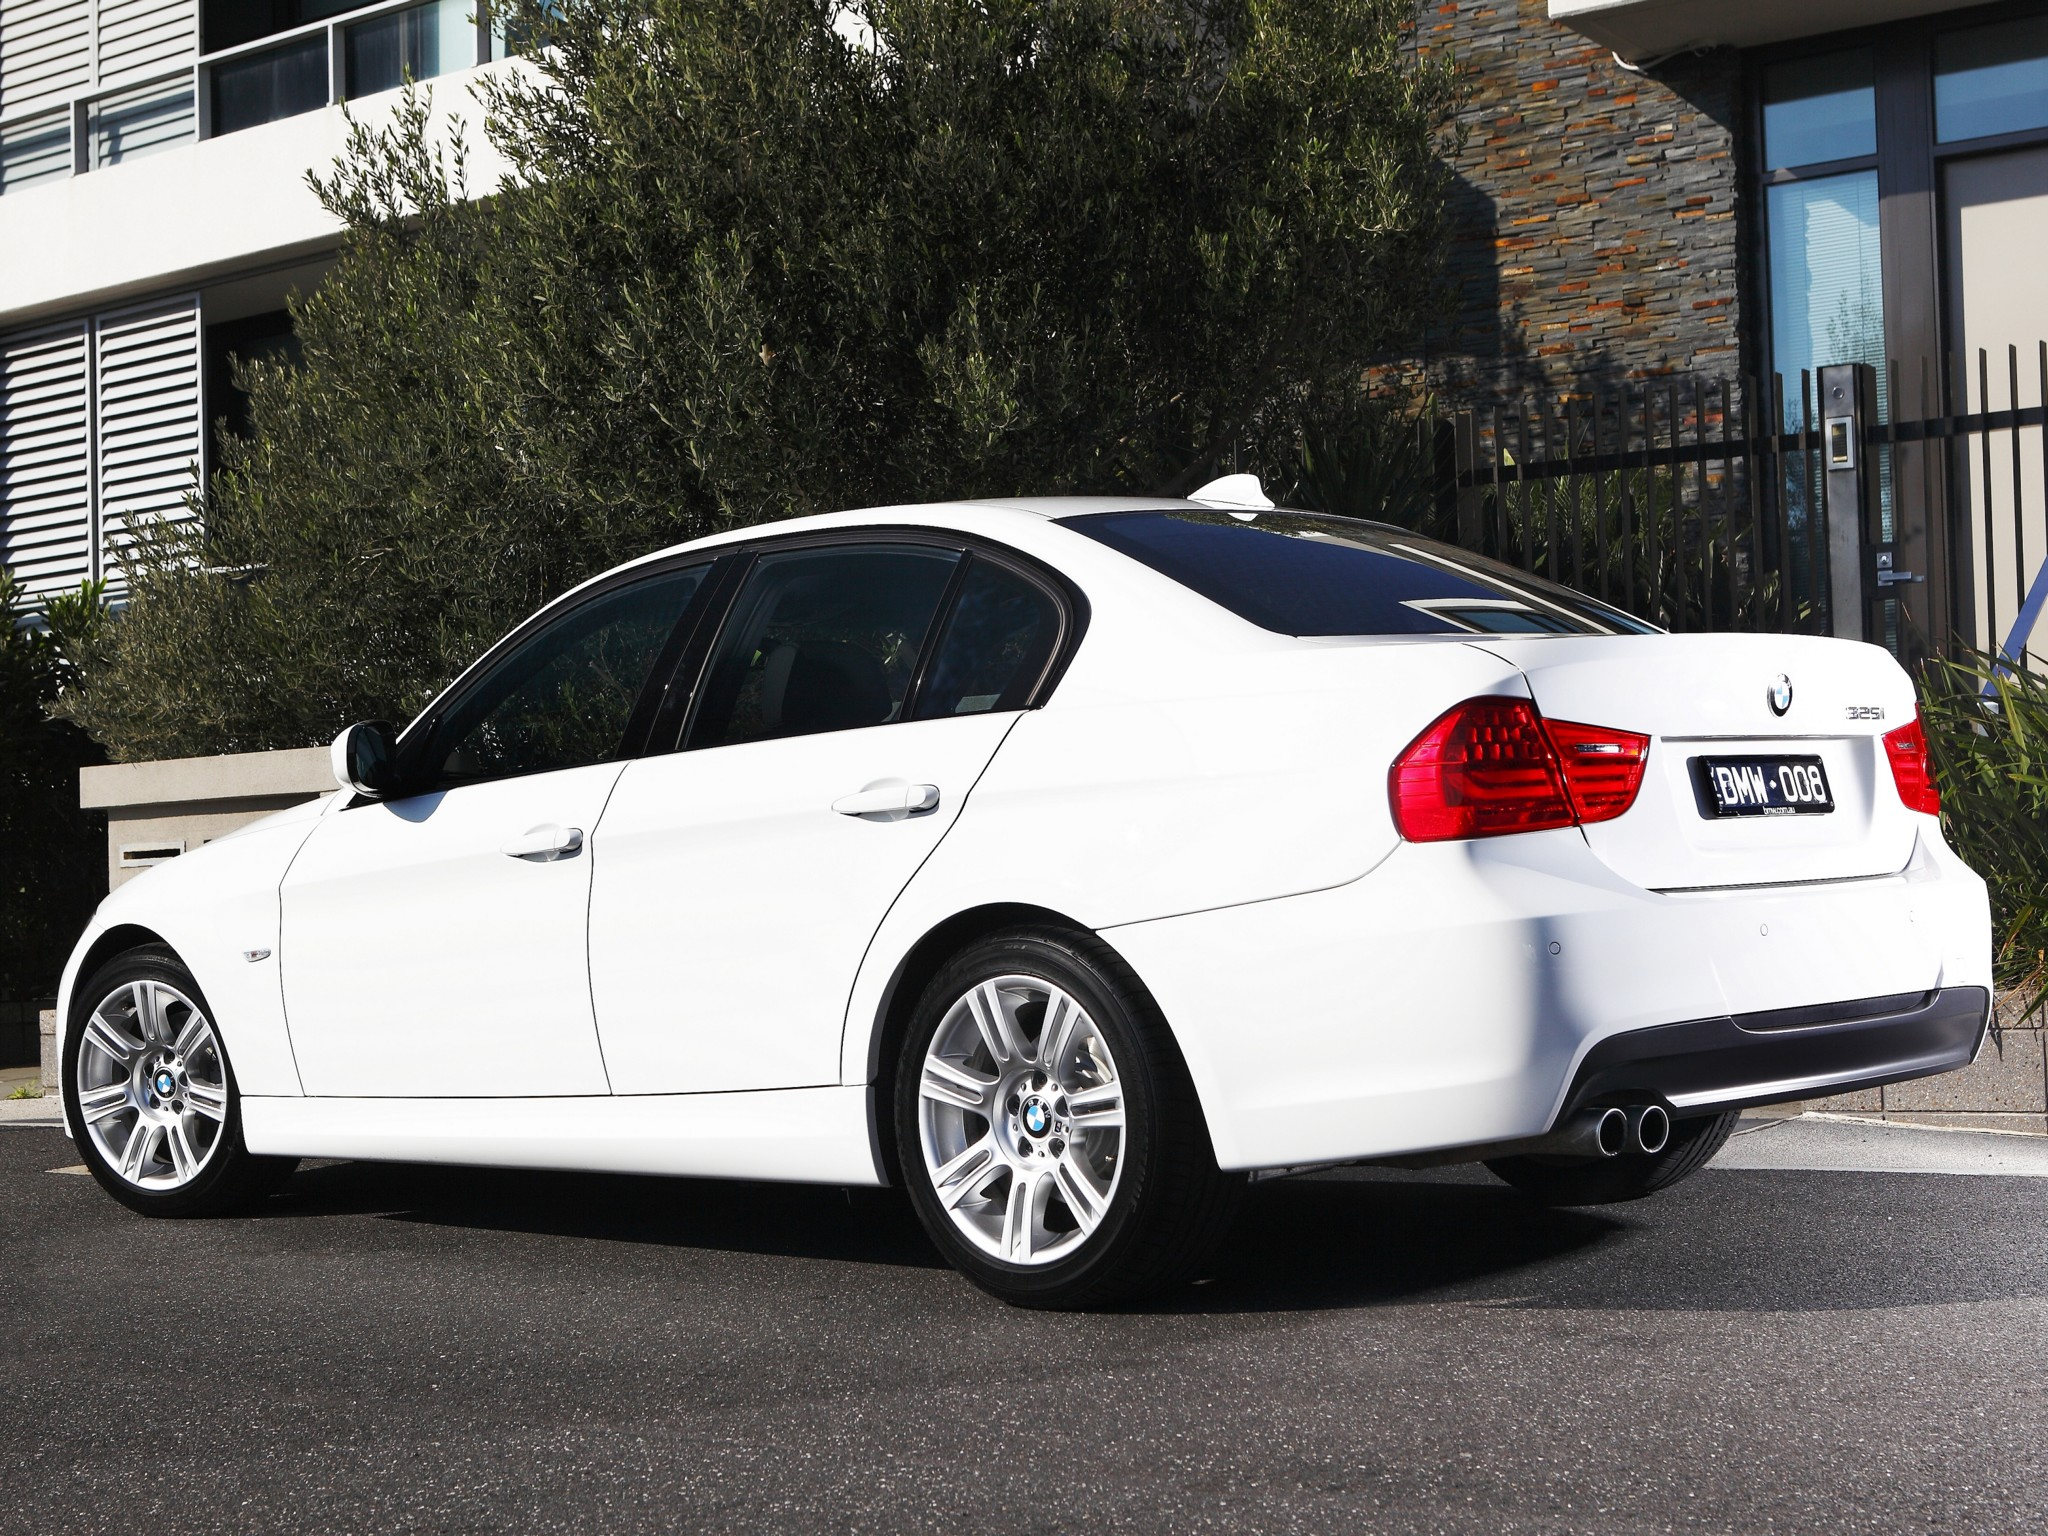 BMW 3 series 325i 2011 photo - 3